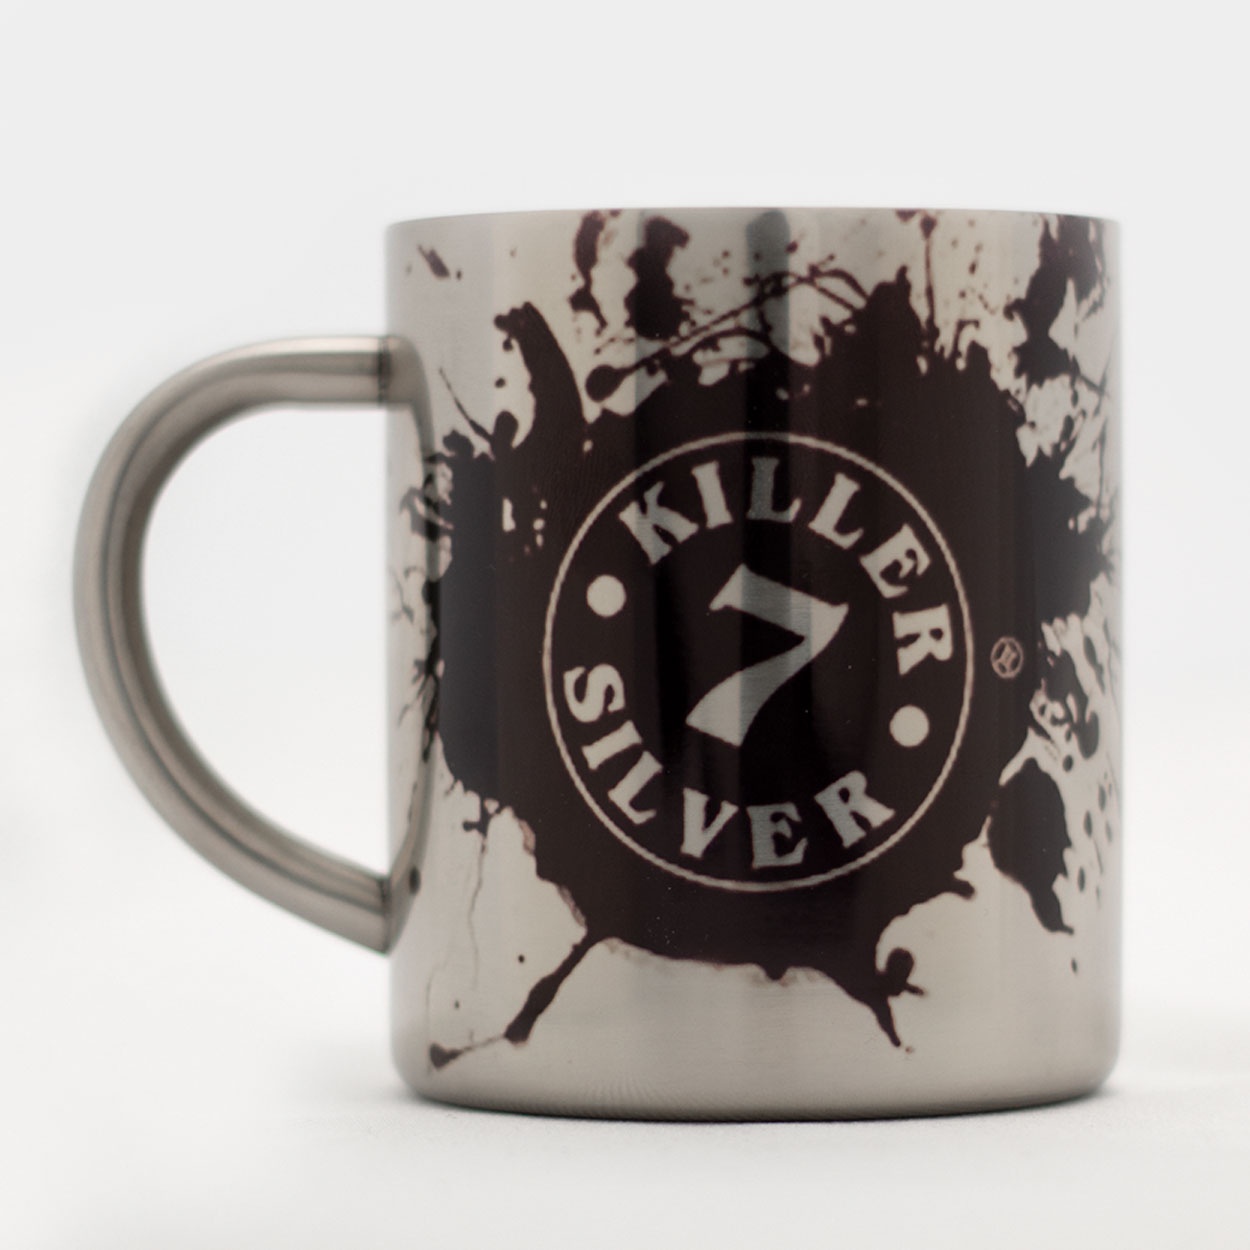 Metal Coffee Mug-Merchandise-KillerSilver